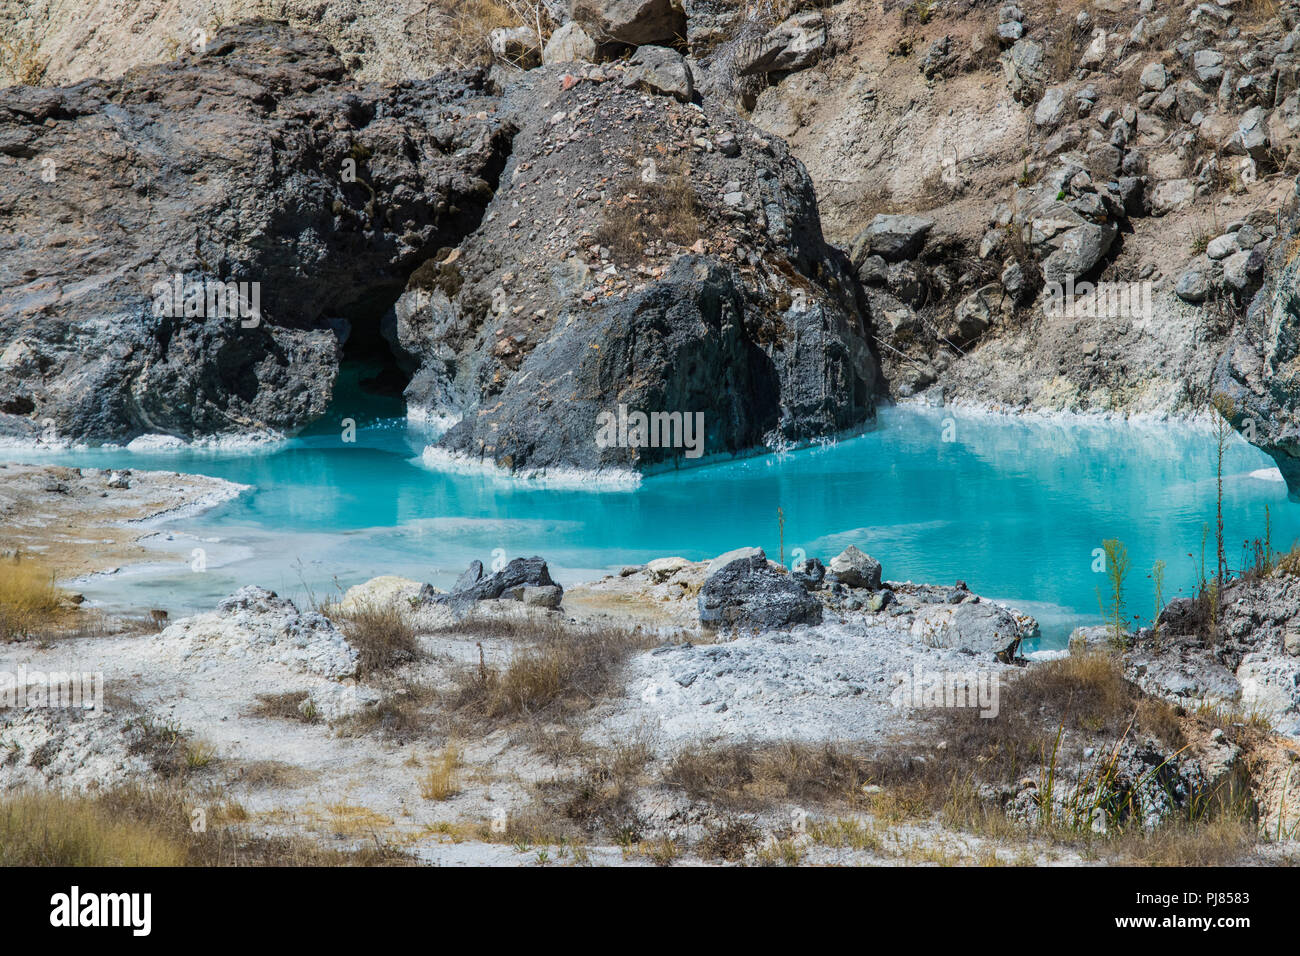 Hot Creek is part of The Long Valley Caldera hosts an active hydrothermal system that includes hot springs, fumaroles steam vents and mineral deposits - Stock Image